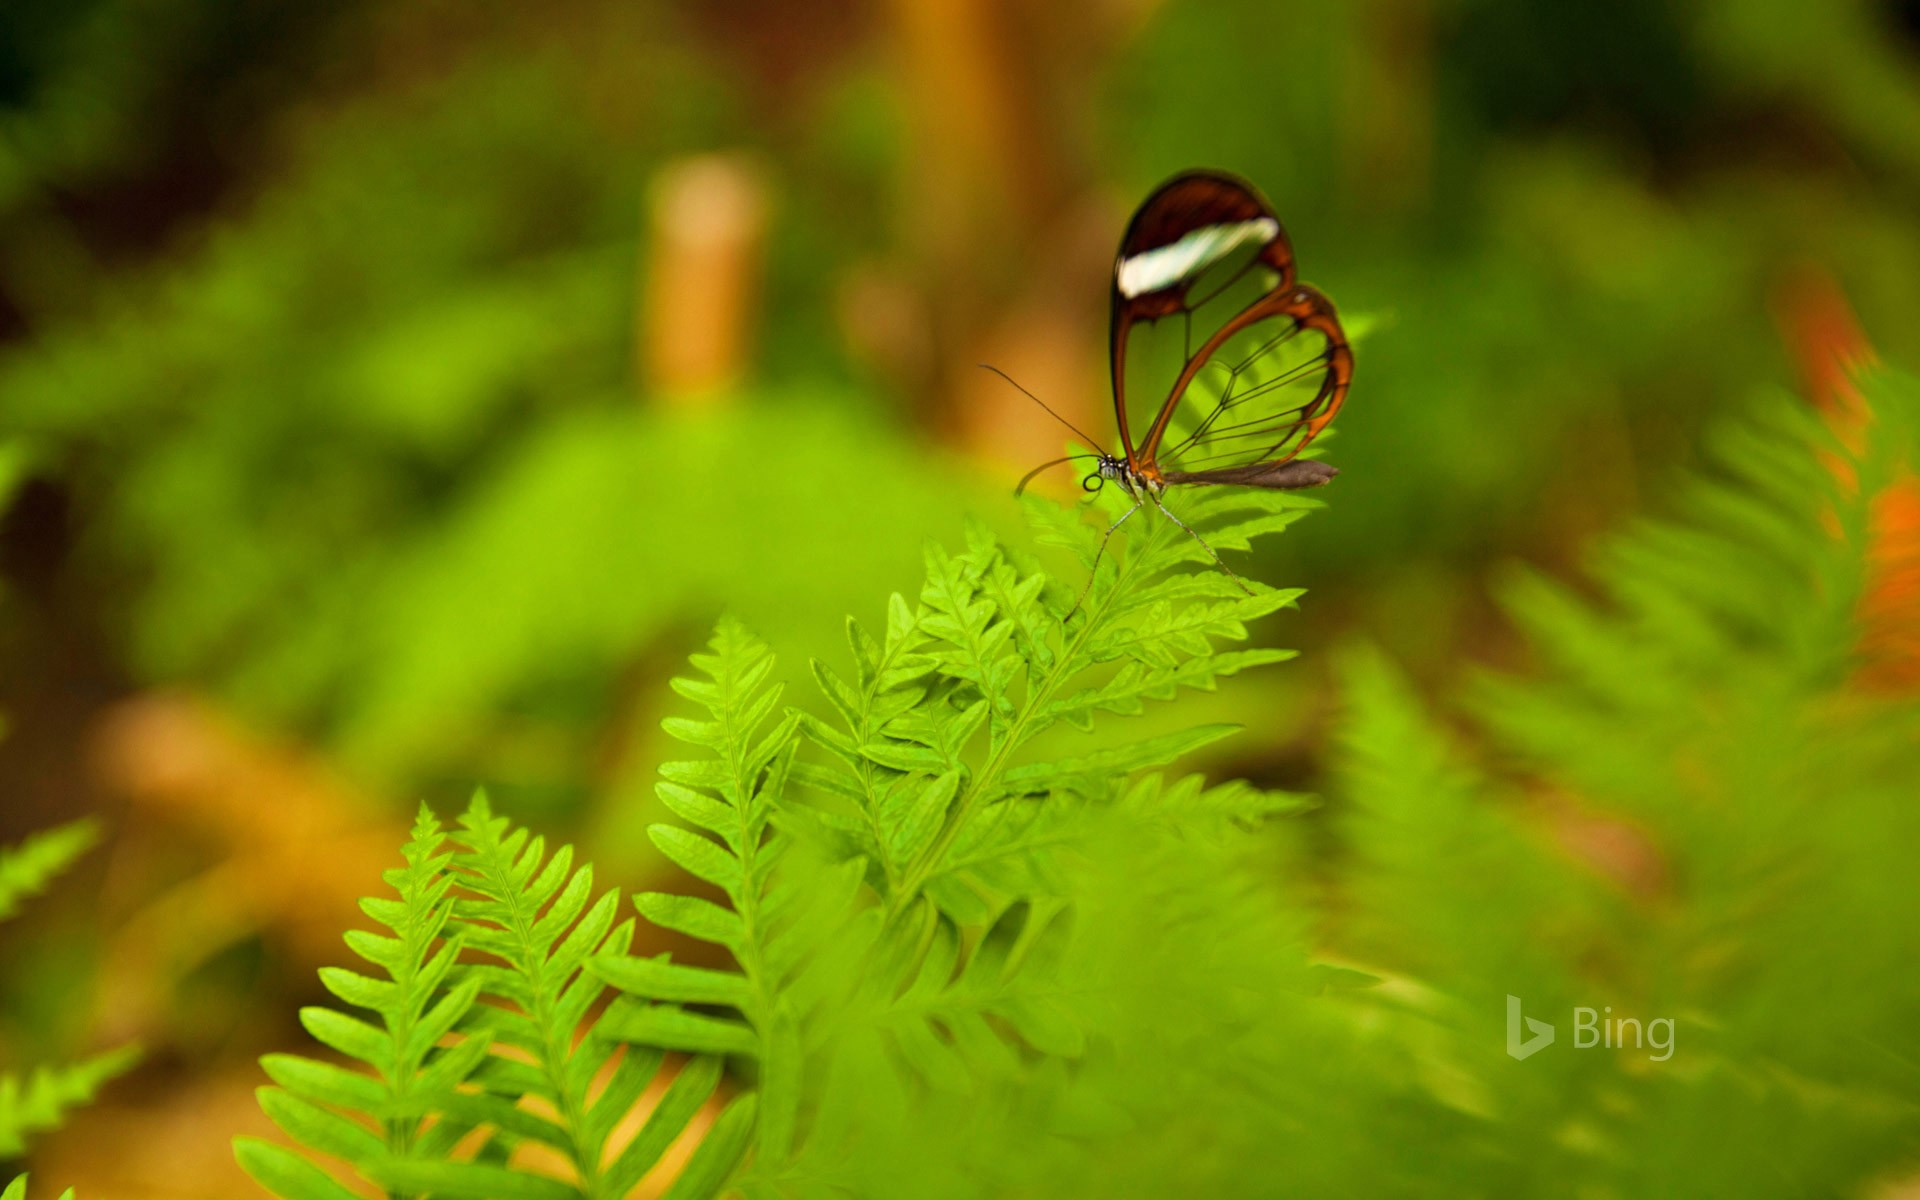 A glasswing butterfly perched on a leaf